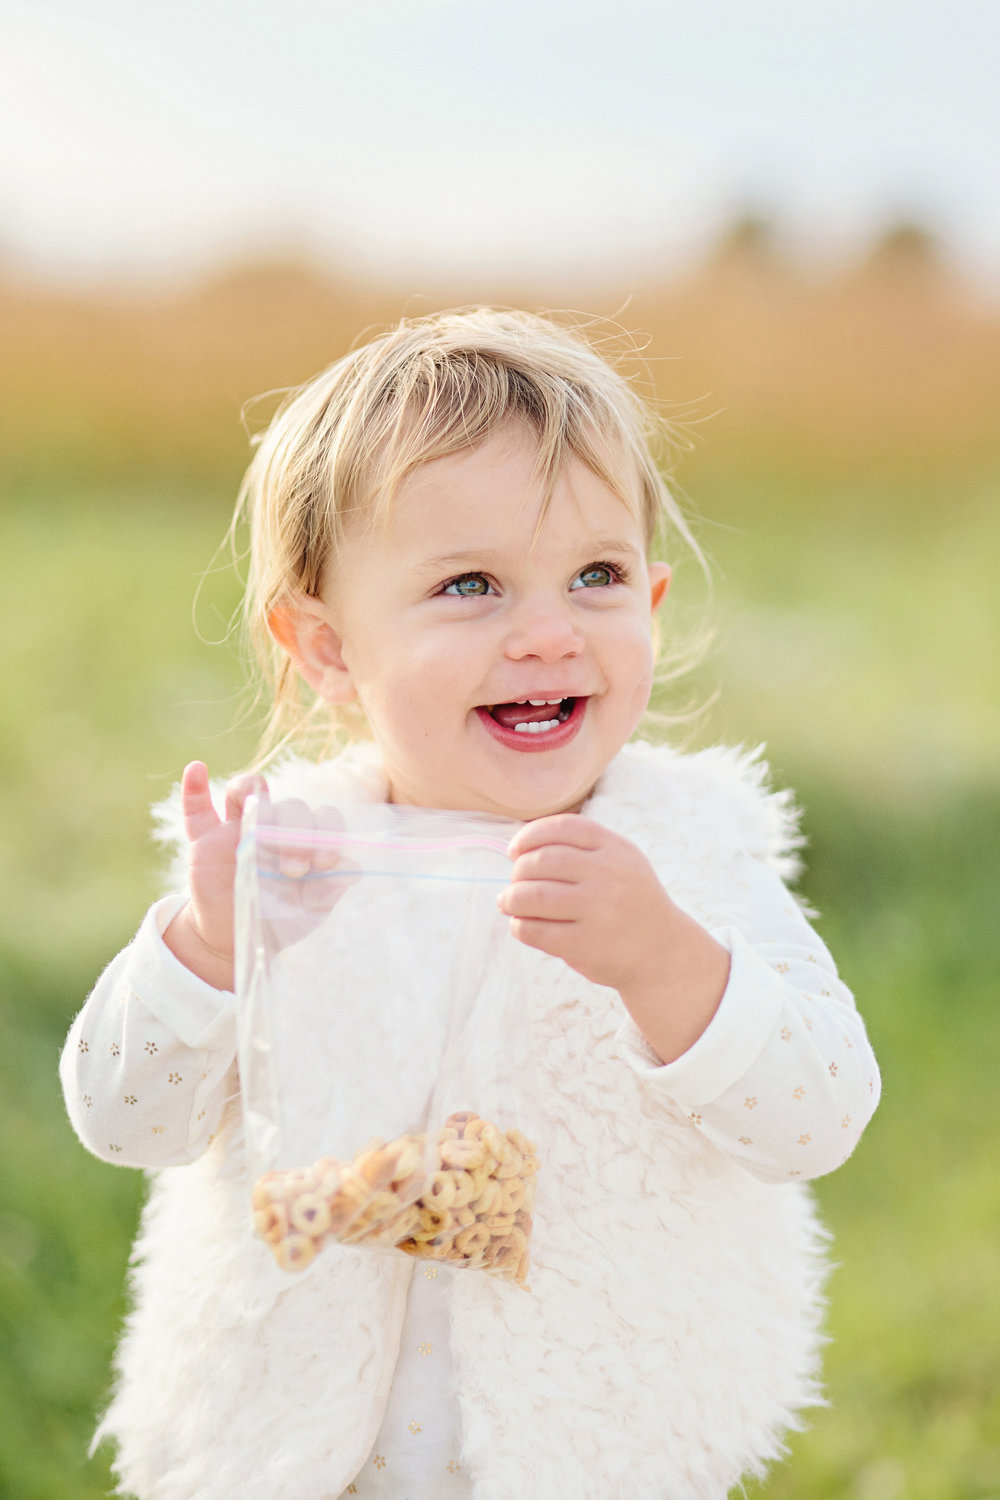 Children's Photographer | Elgin, Illinois | Cassie Schott Photography